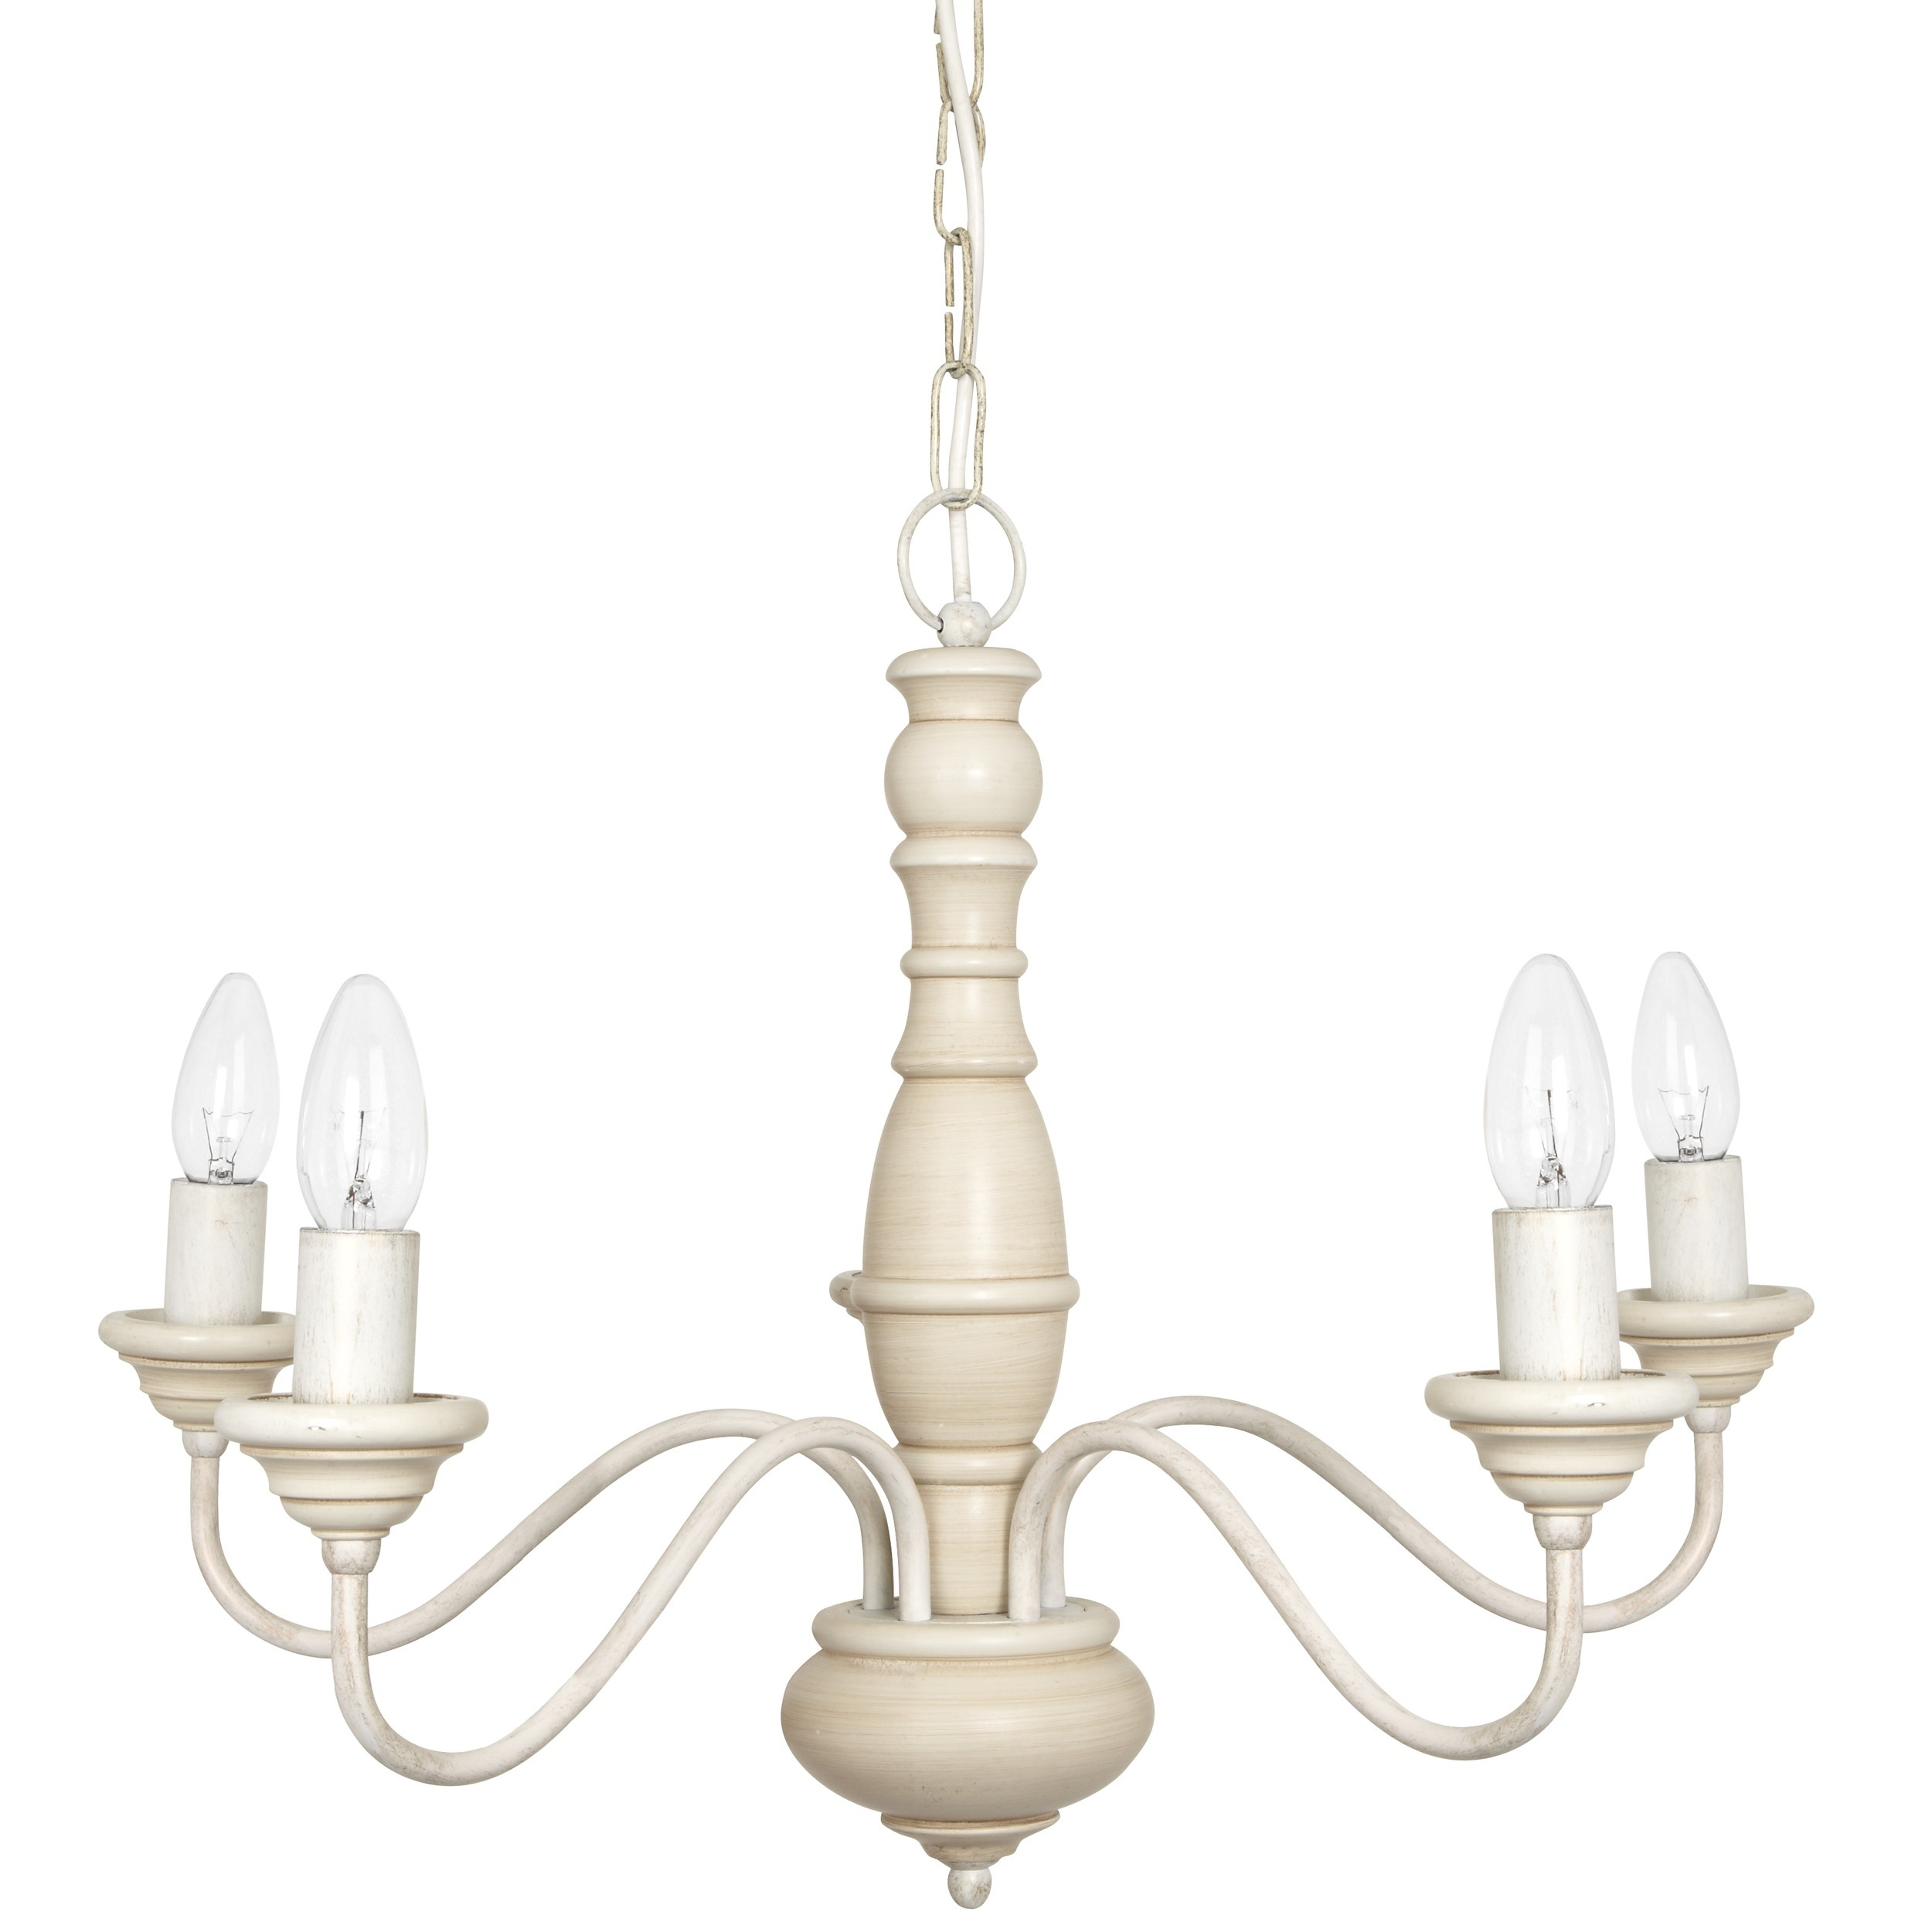 Chella Cream 3 Light Chandelier At Laura Ashley Intended For Cream Chandelier Lights (Image 5 of 15)